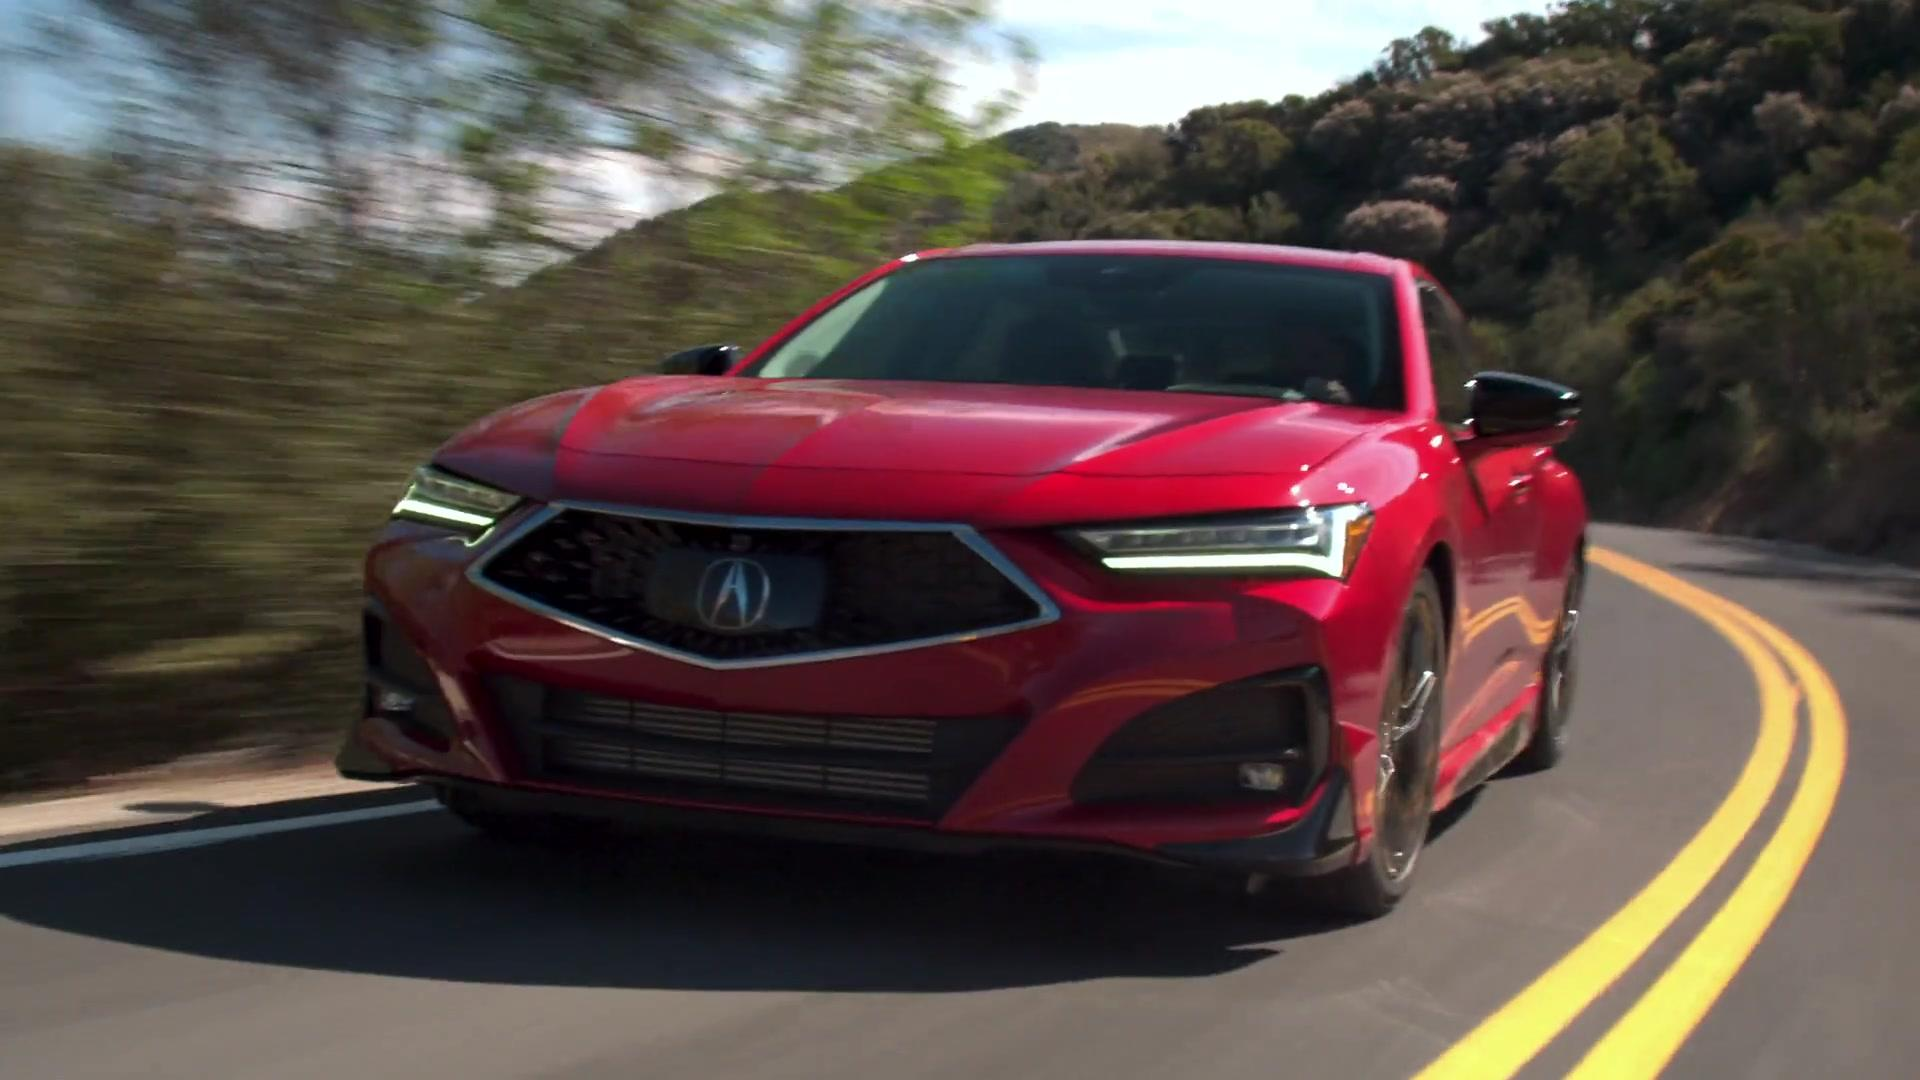 the all-new 2021 acura tlx driving video - one news page video